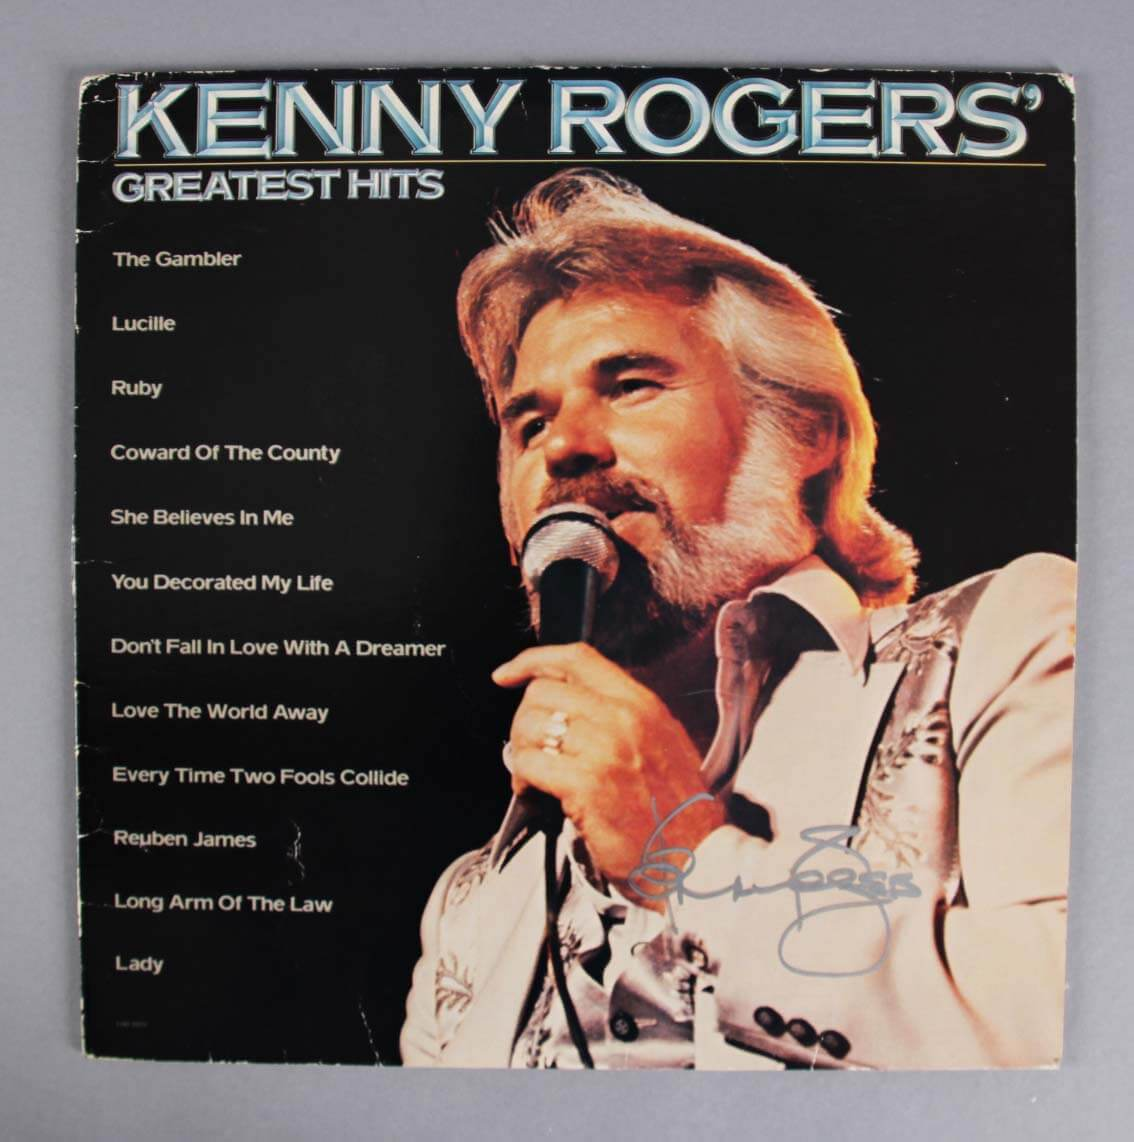 Kenny Rogers Signed Greatest Hits Record Album Jsa